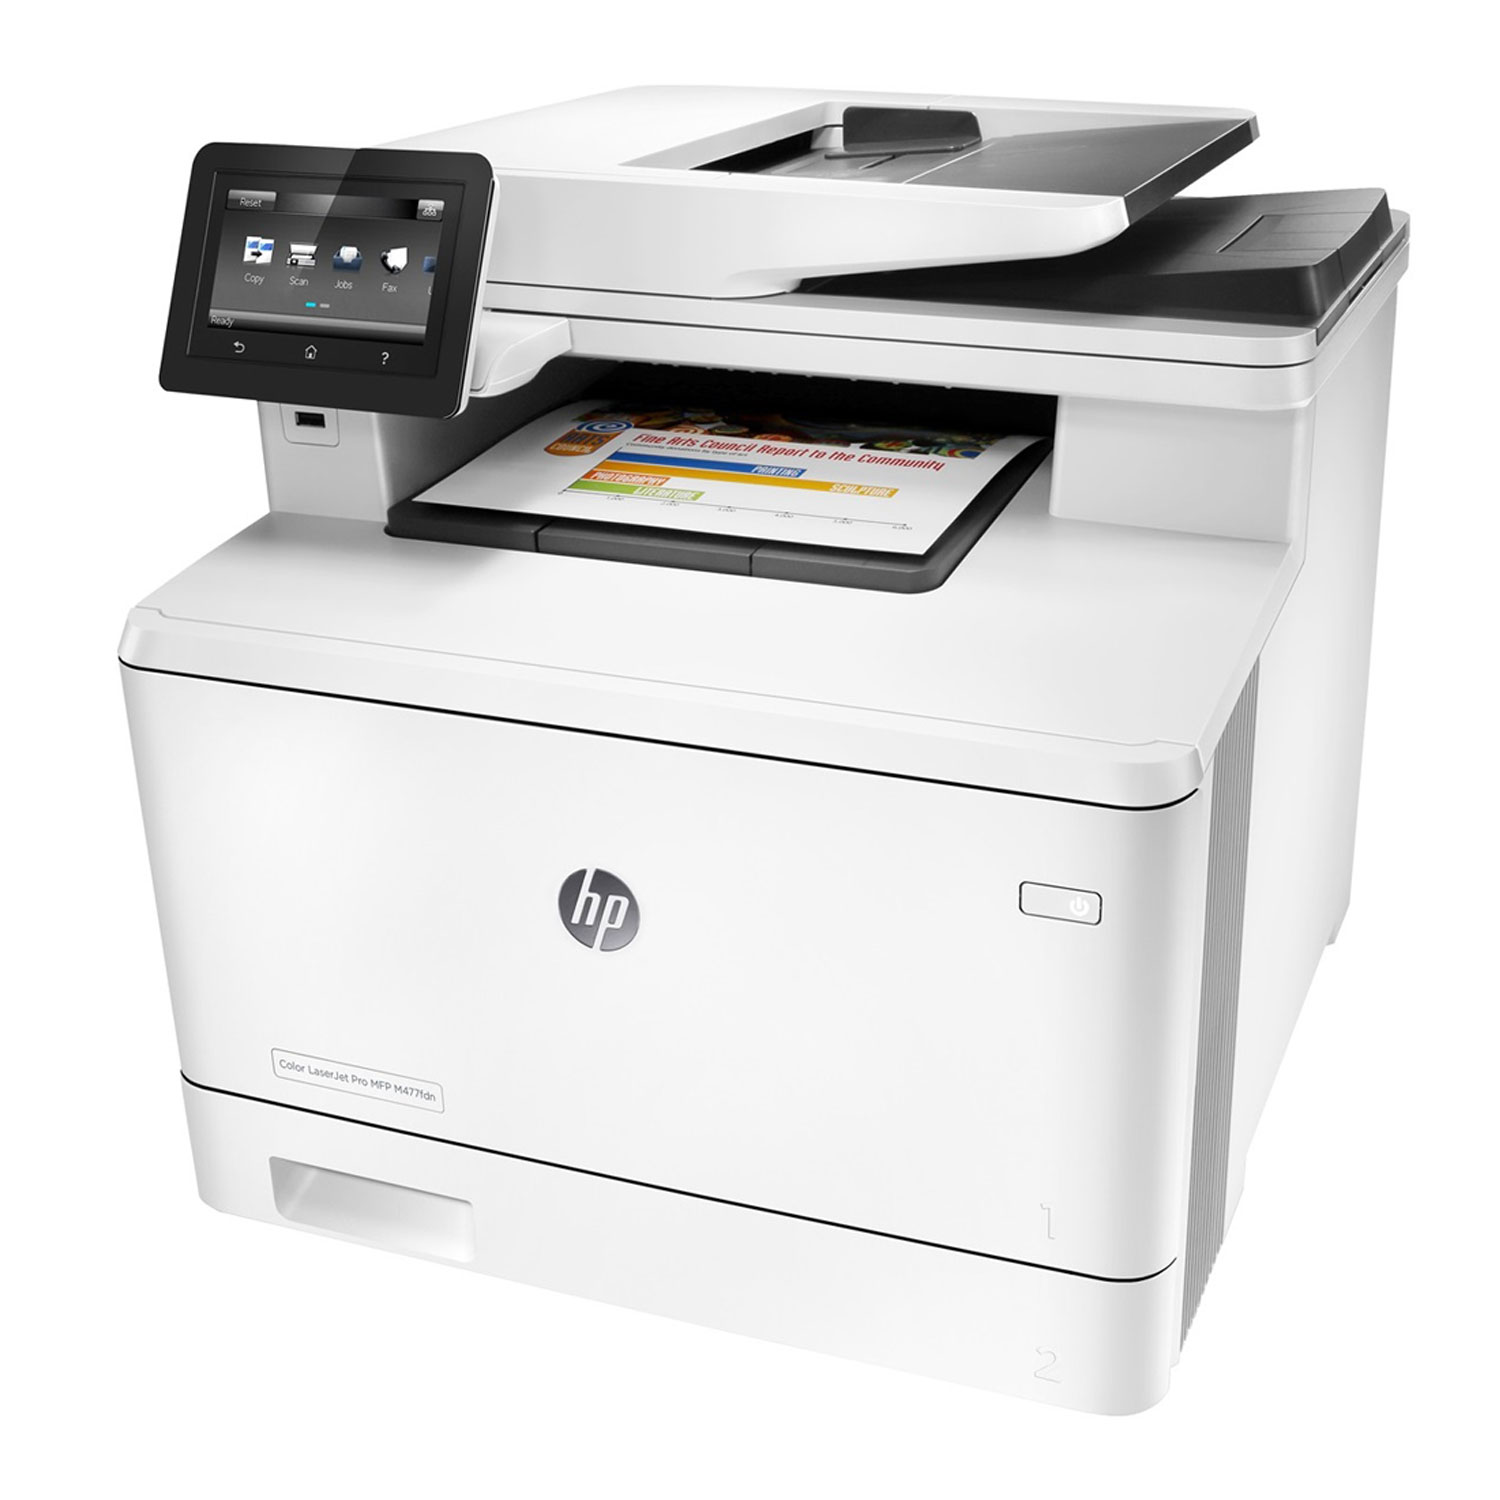 hp color laserjet pro mfp m477fdn imprimante multifonction hp sur. Black Bedroom Furniture Sets. Home Design Ideas